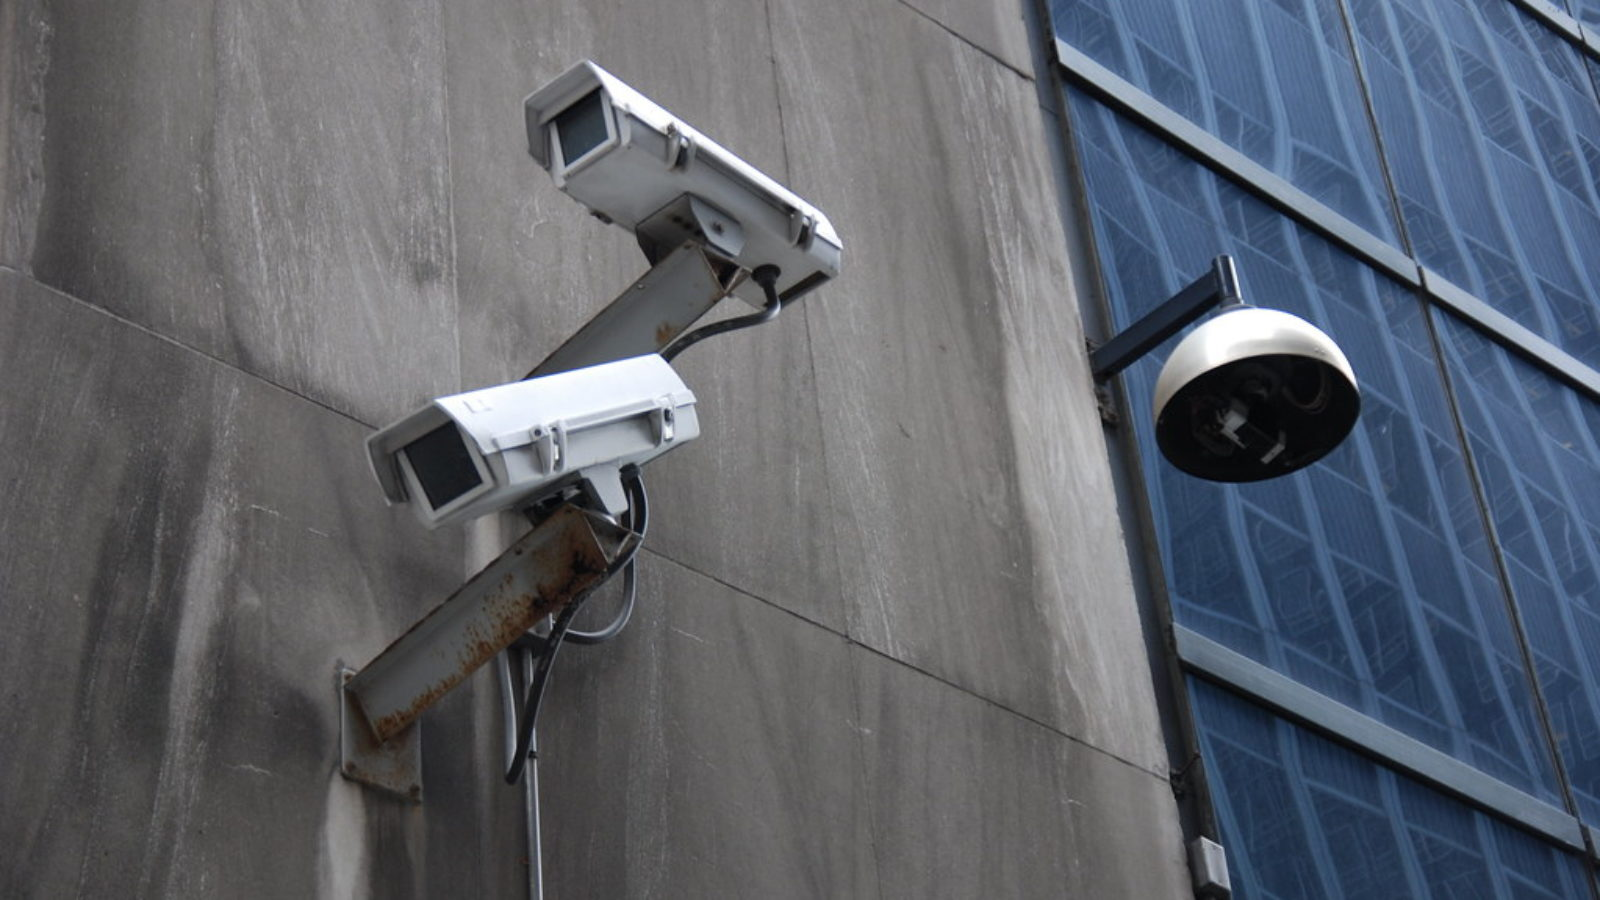 Two video surveillance cameras on the side of a building.